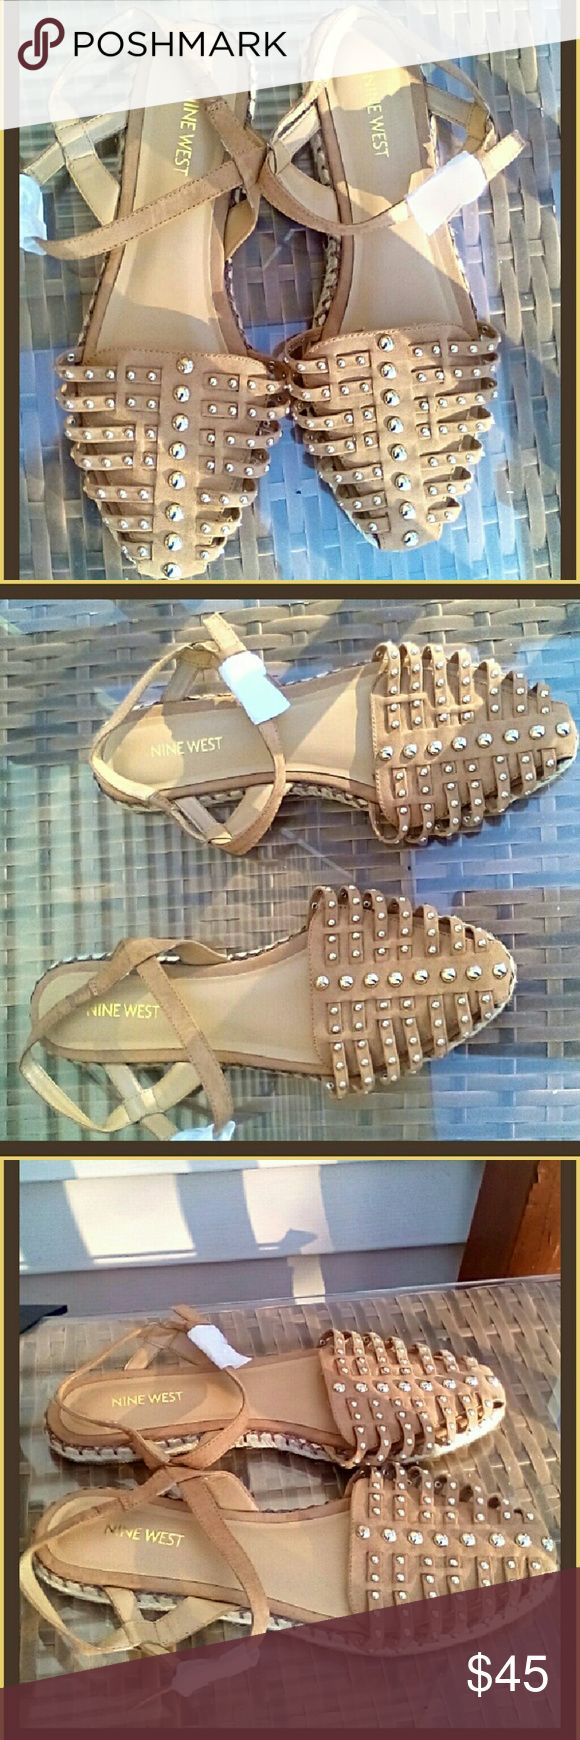 Nine West Leather Espadrille  Studded Sandals NWOT Gold studded leather sandals NBW by Nine West. Only in store to try on indentation where staple was at holding price tag is there. I don't have the inbox but the buckles have remained covered since I bother this Summer. I had bought two pairs these and a pair of pink ones but I never got around to wearing this. They are very comfortable and so fun to wear and go with so many different types of clothing whoever ends up with these will love…